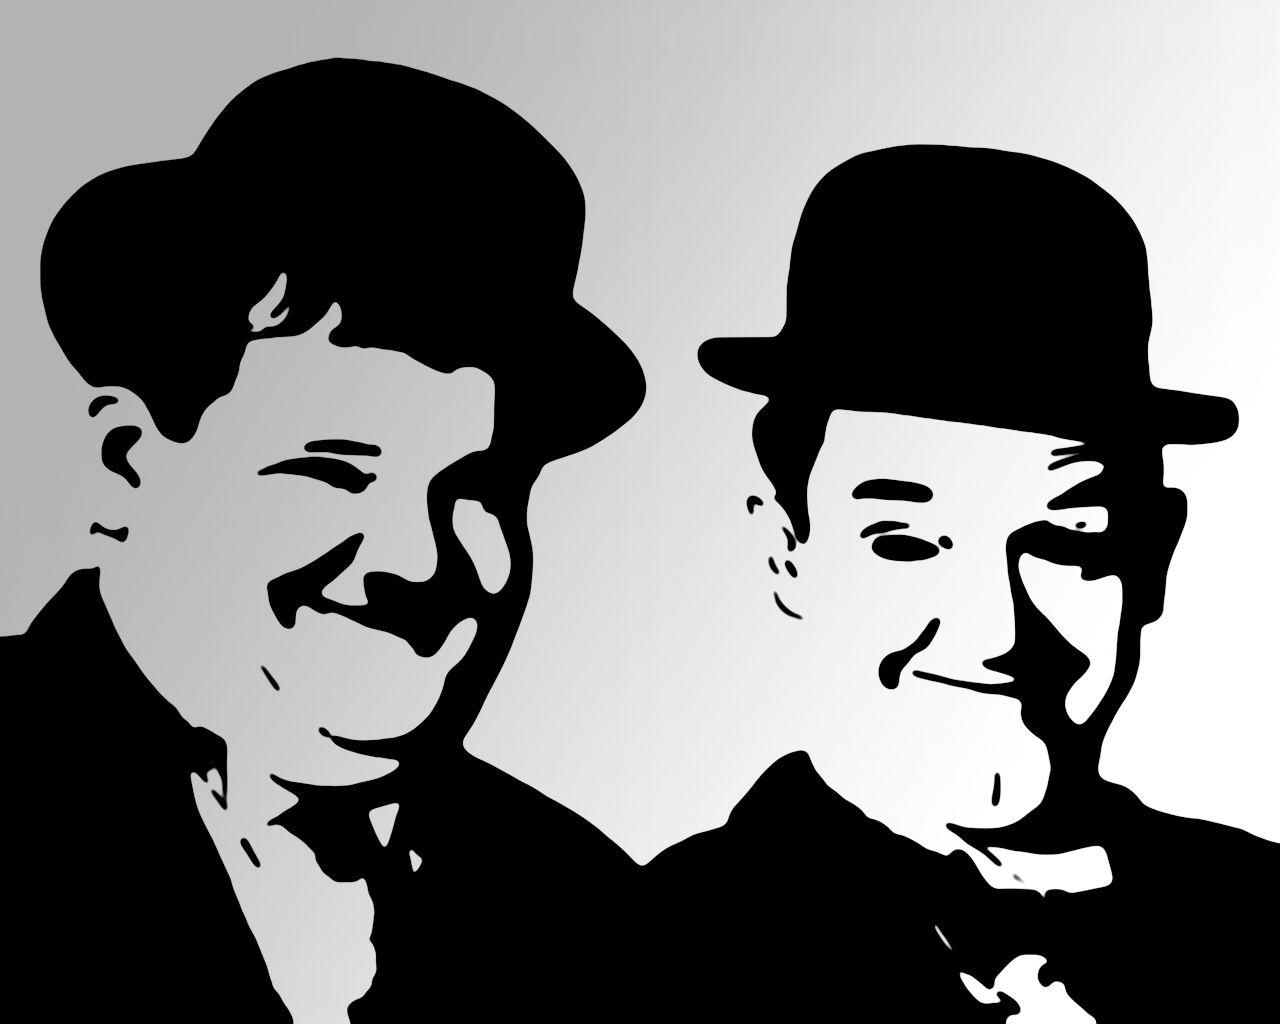 laurel and hardy by spil on DeviantArt